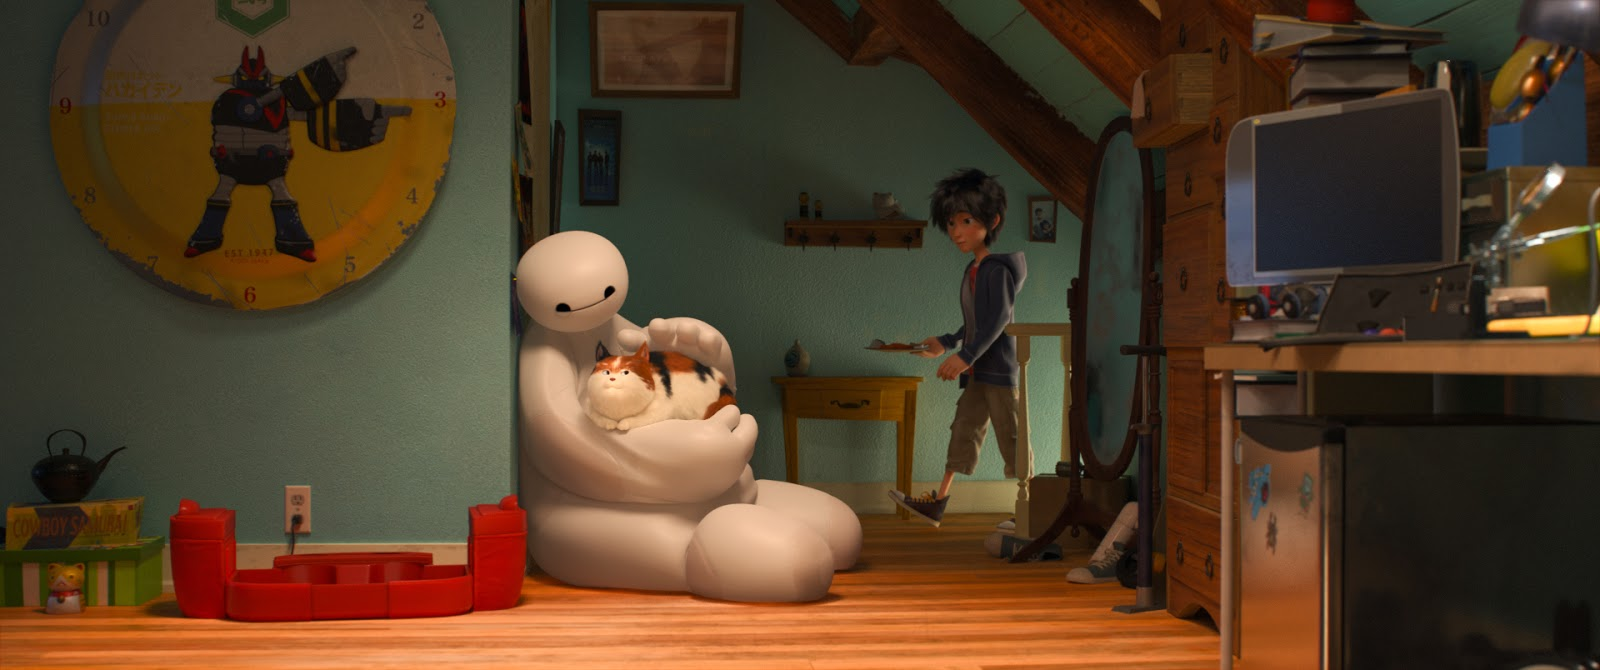 Baymax holding the furry baby aka a cat © 2014 Disney